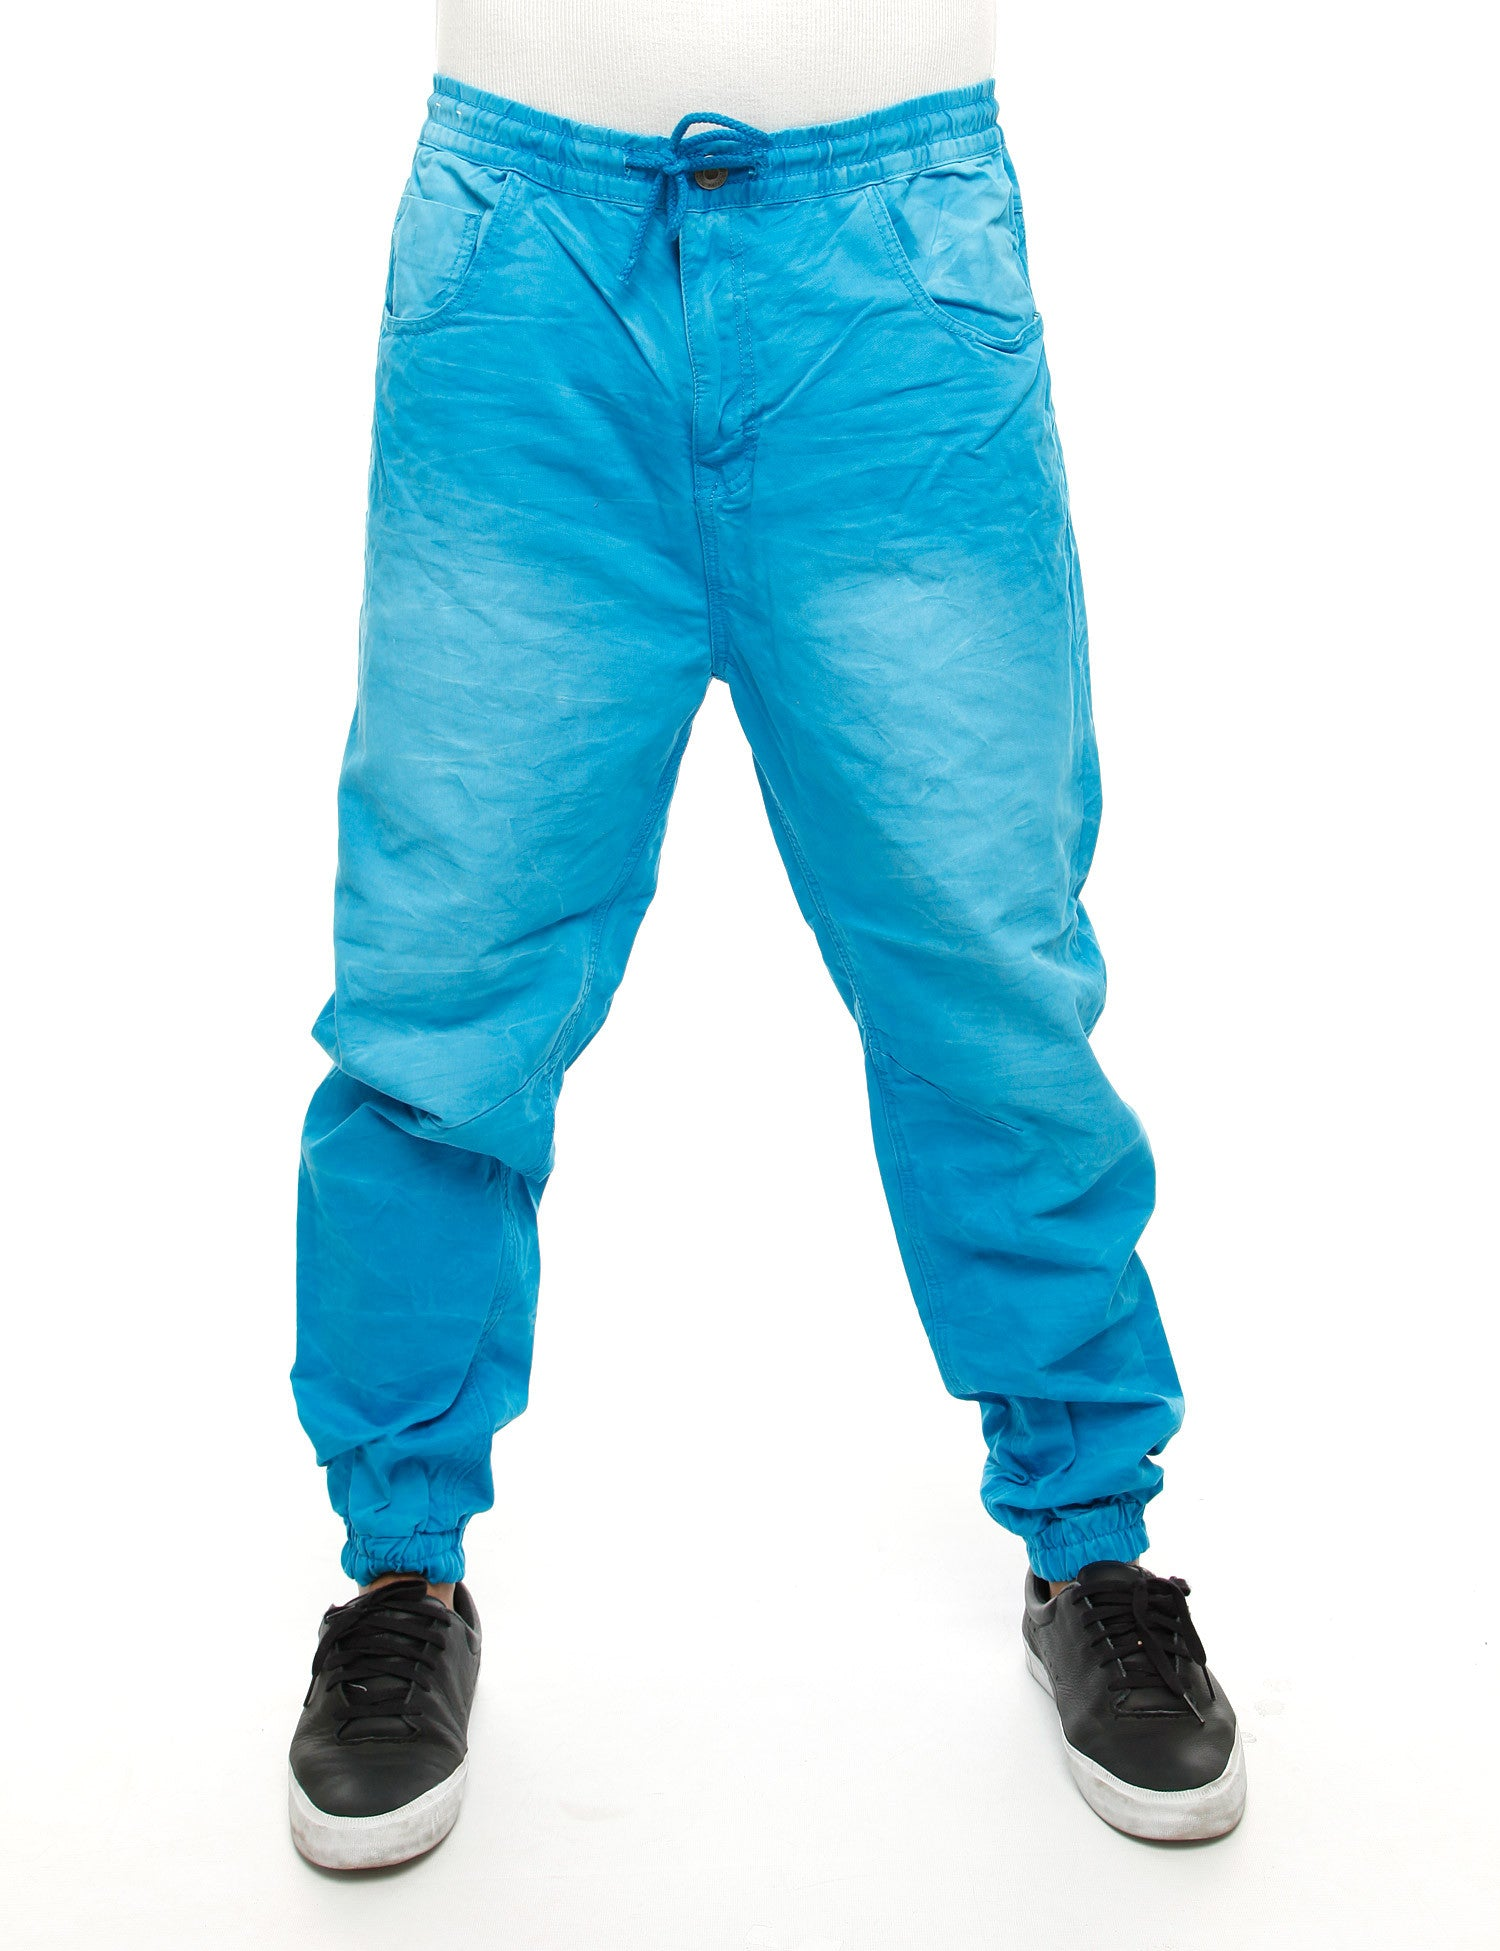 Royal Blue Jogger Jeans 8394 Turquoise